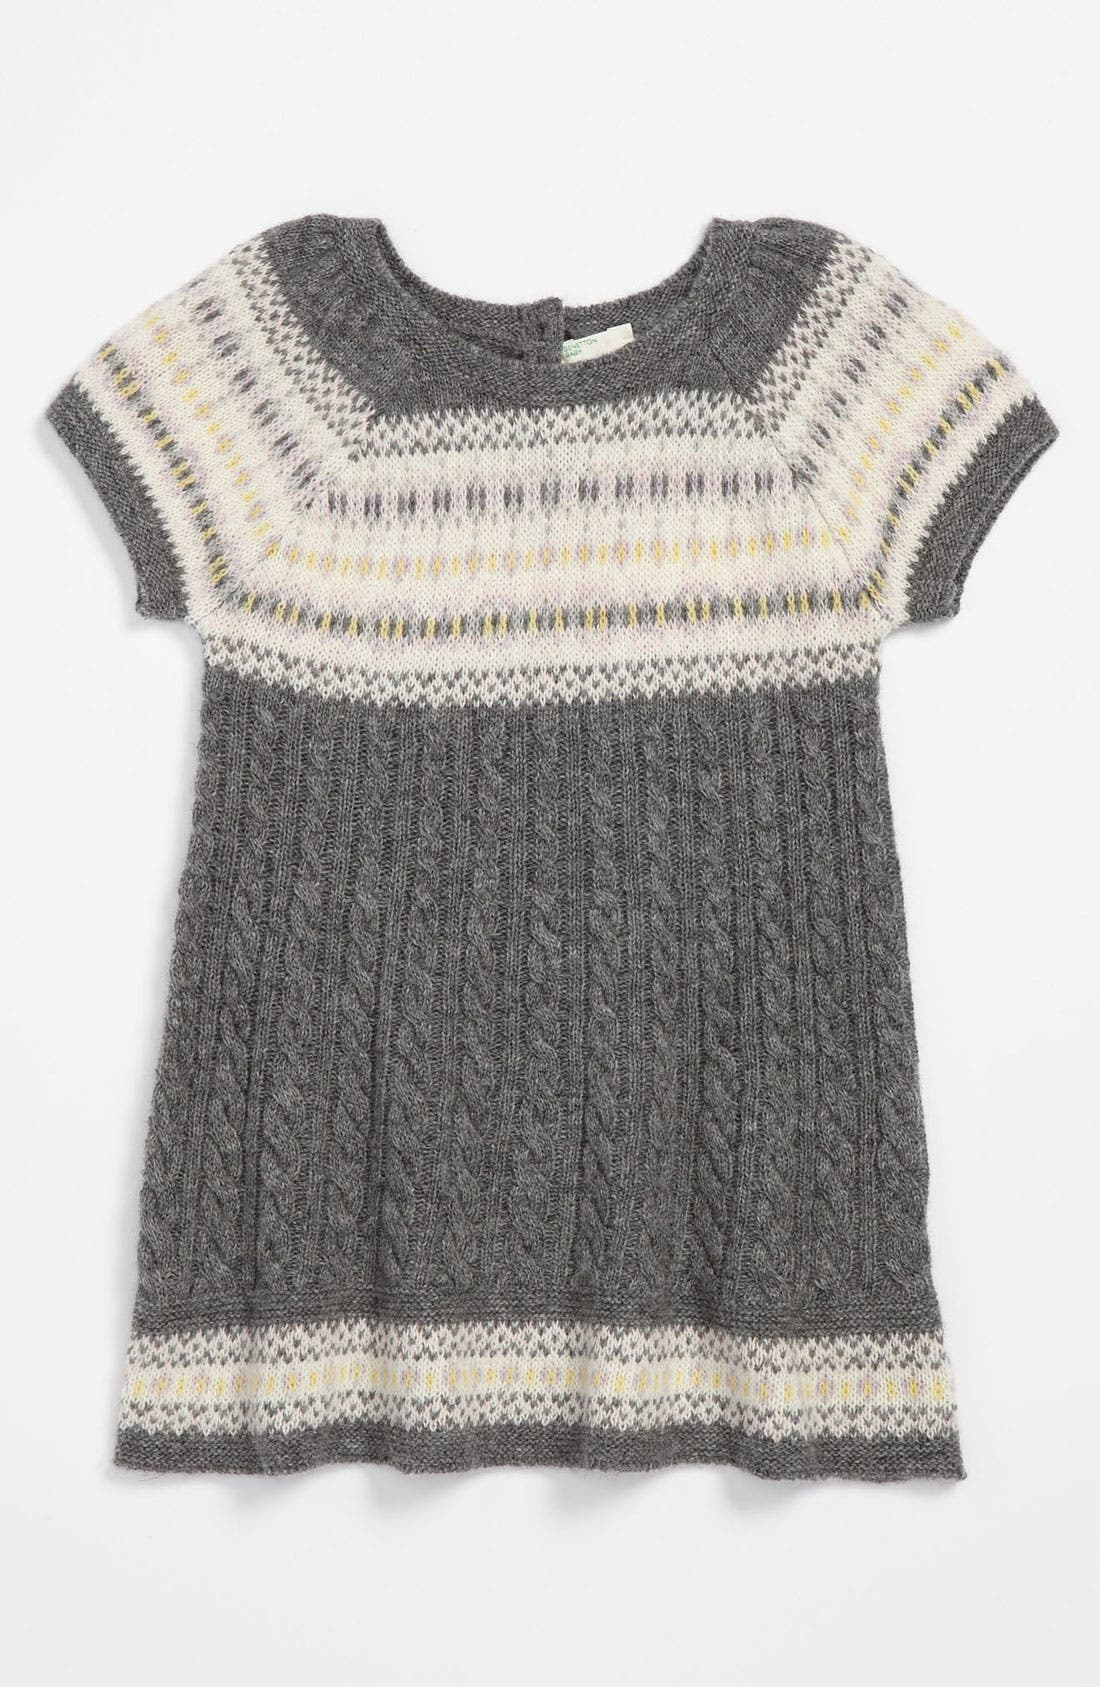 Alternate Image 1 Selected - United Colors of Benetton Kids Knit Dress (Infant)